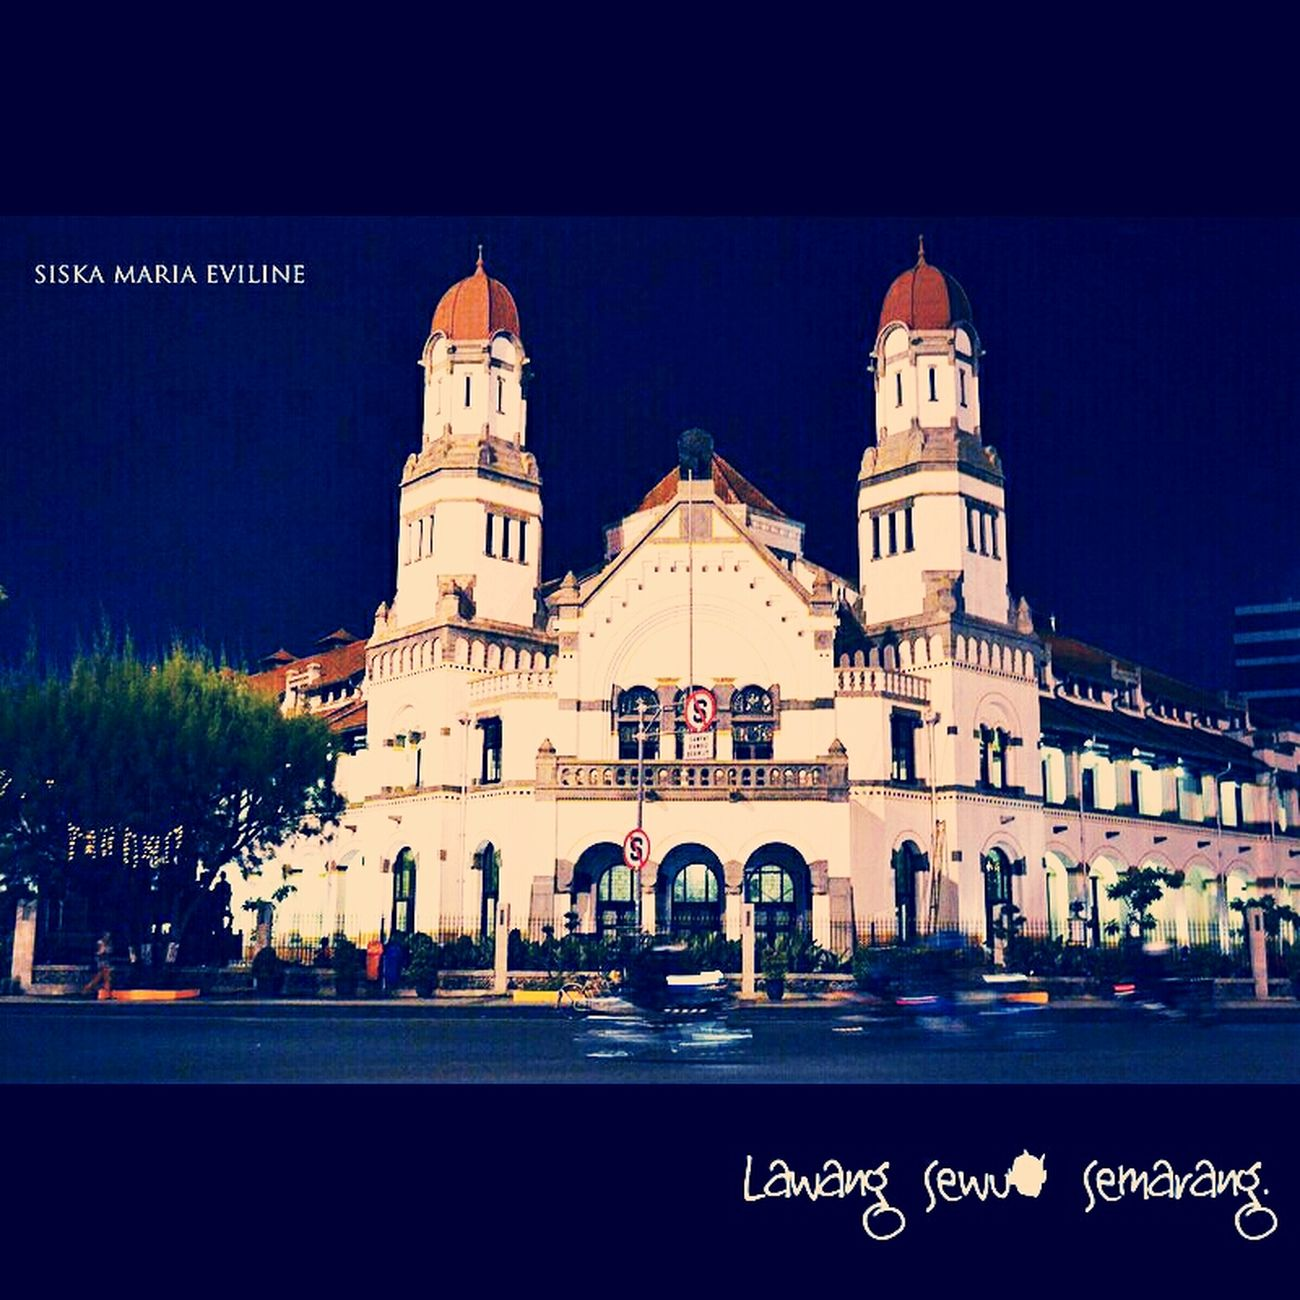 Architecture One Of The Iconic Building In Semarang, Indonesia.